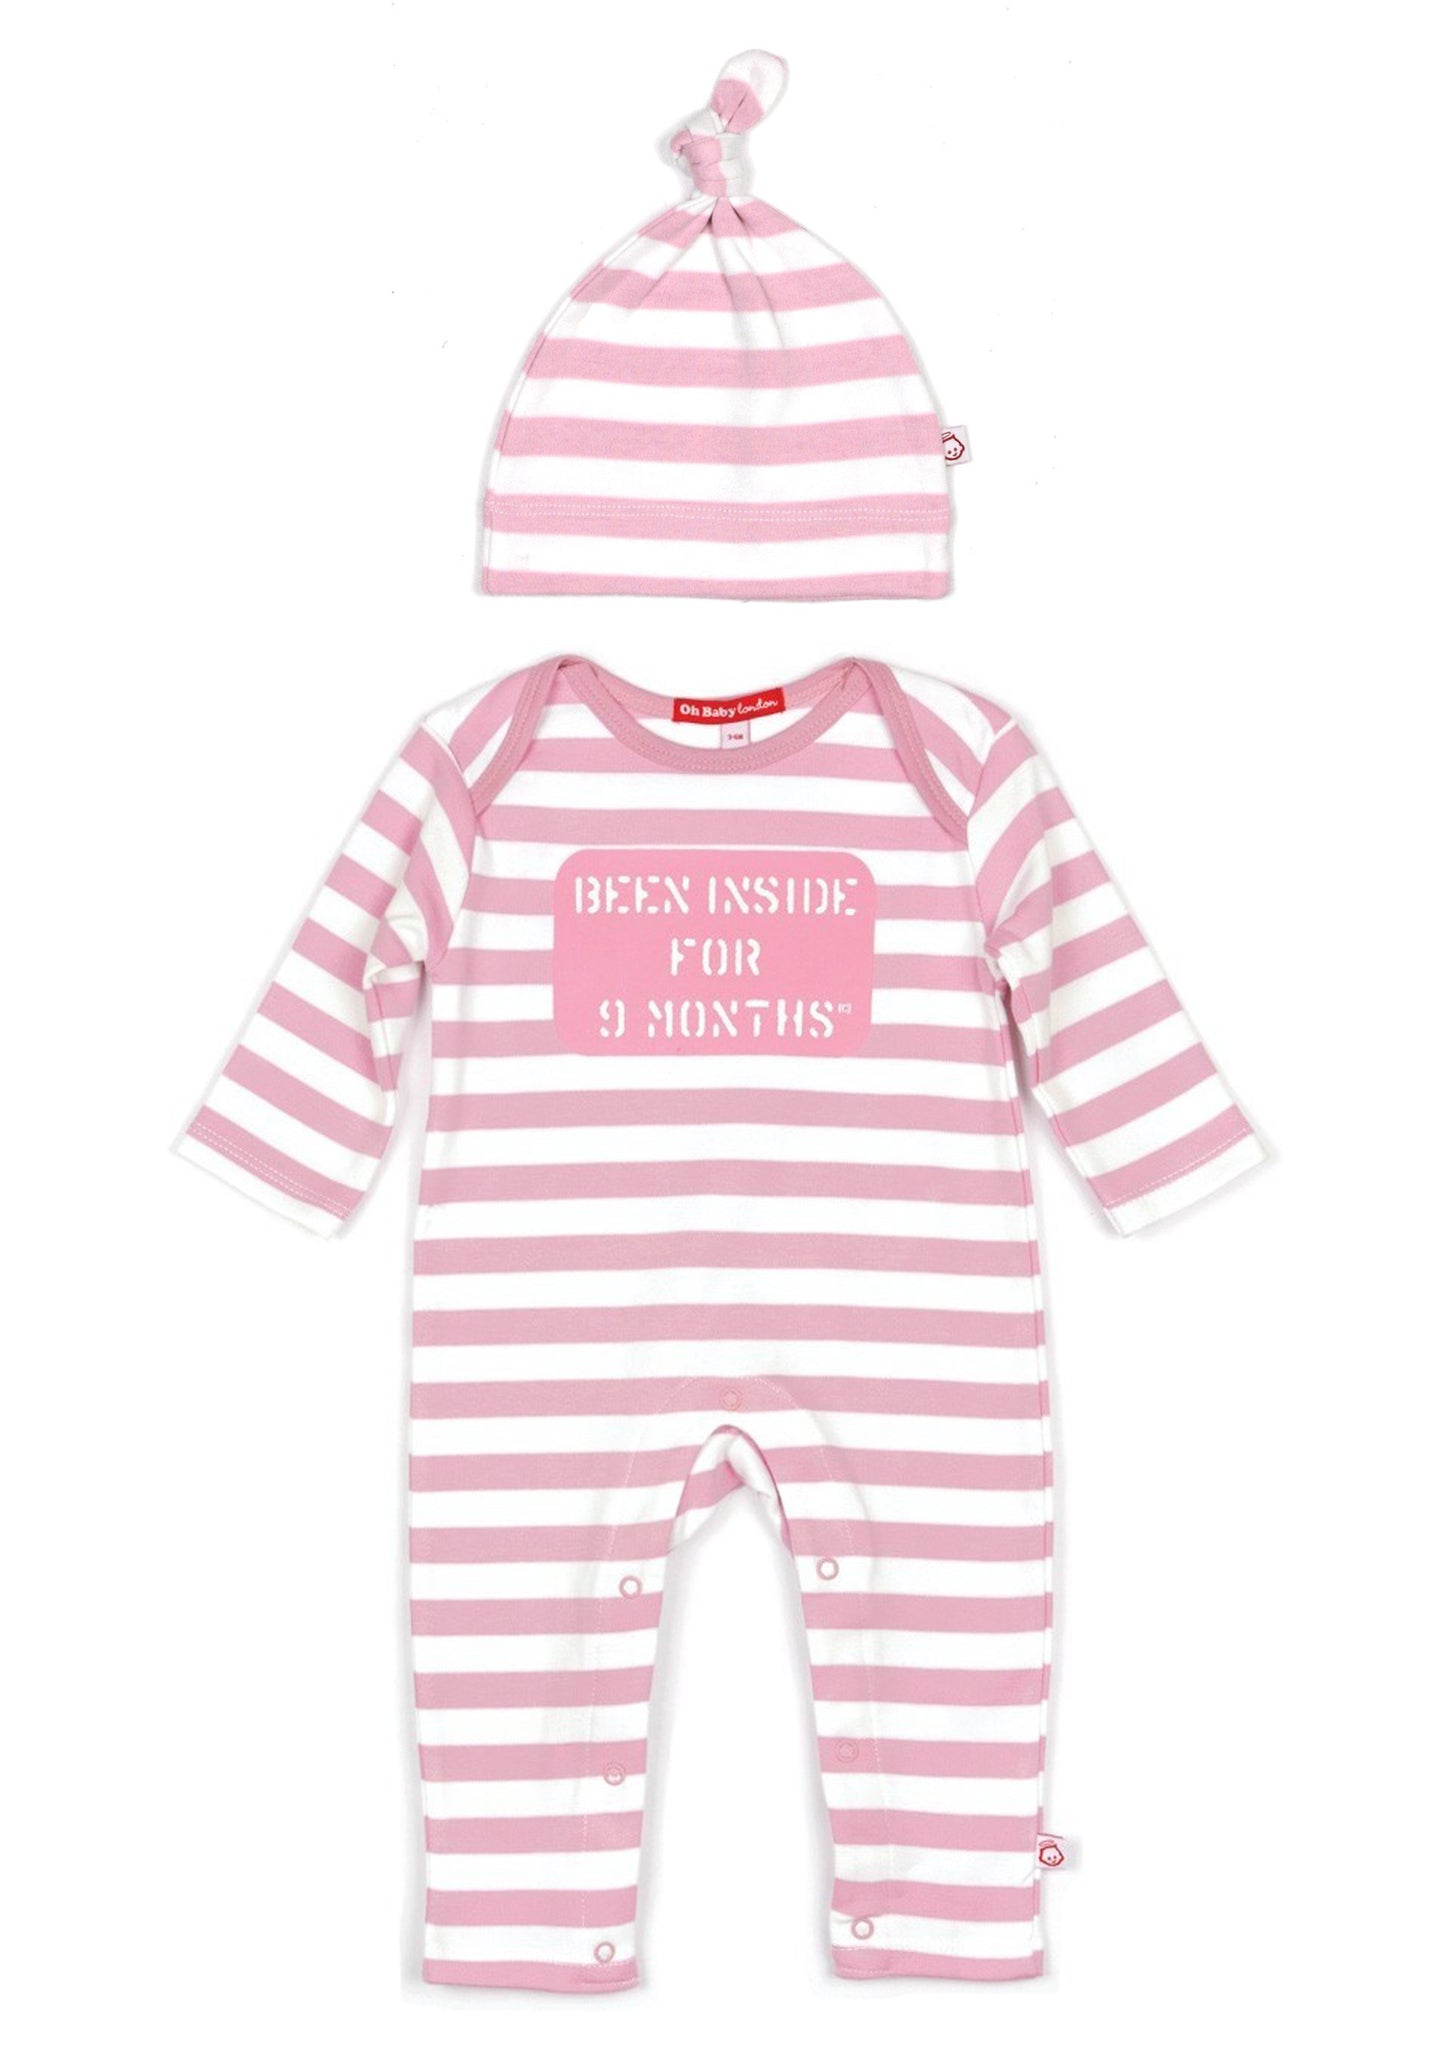 ORGANIC BEEN INSIDE FOR 9 MONTHS PLAYSUIT & HAT GIFT SET